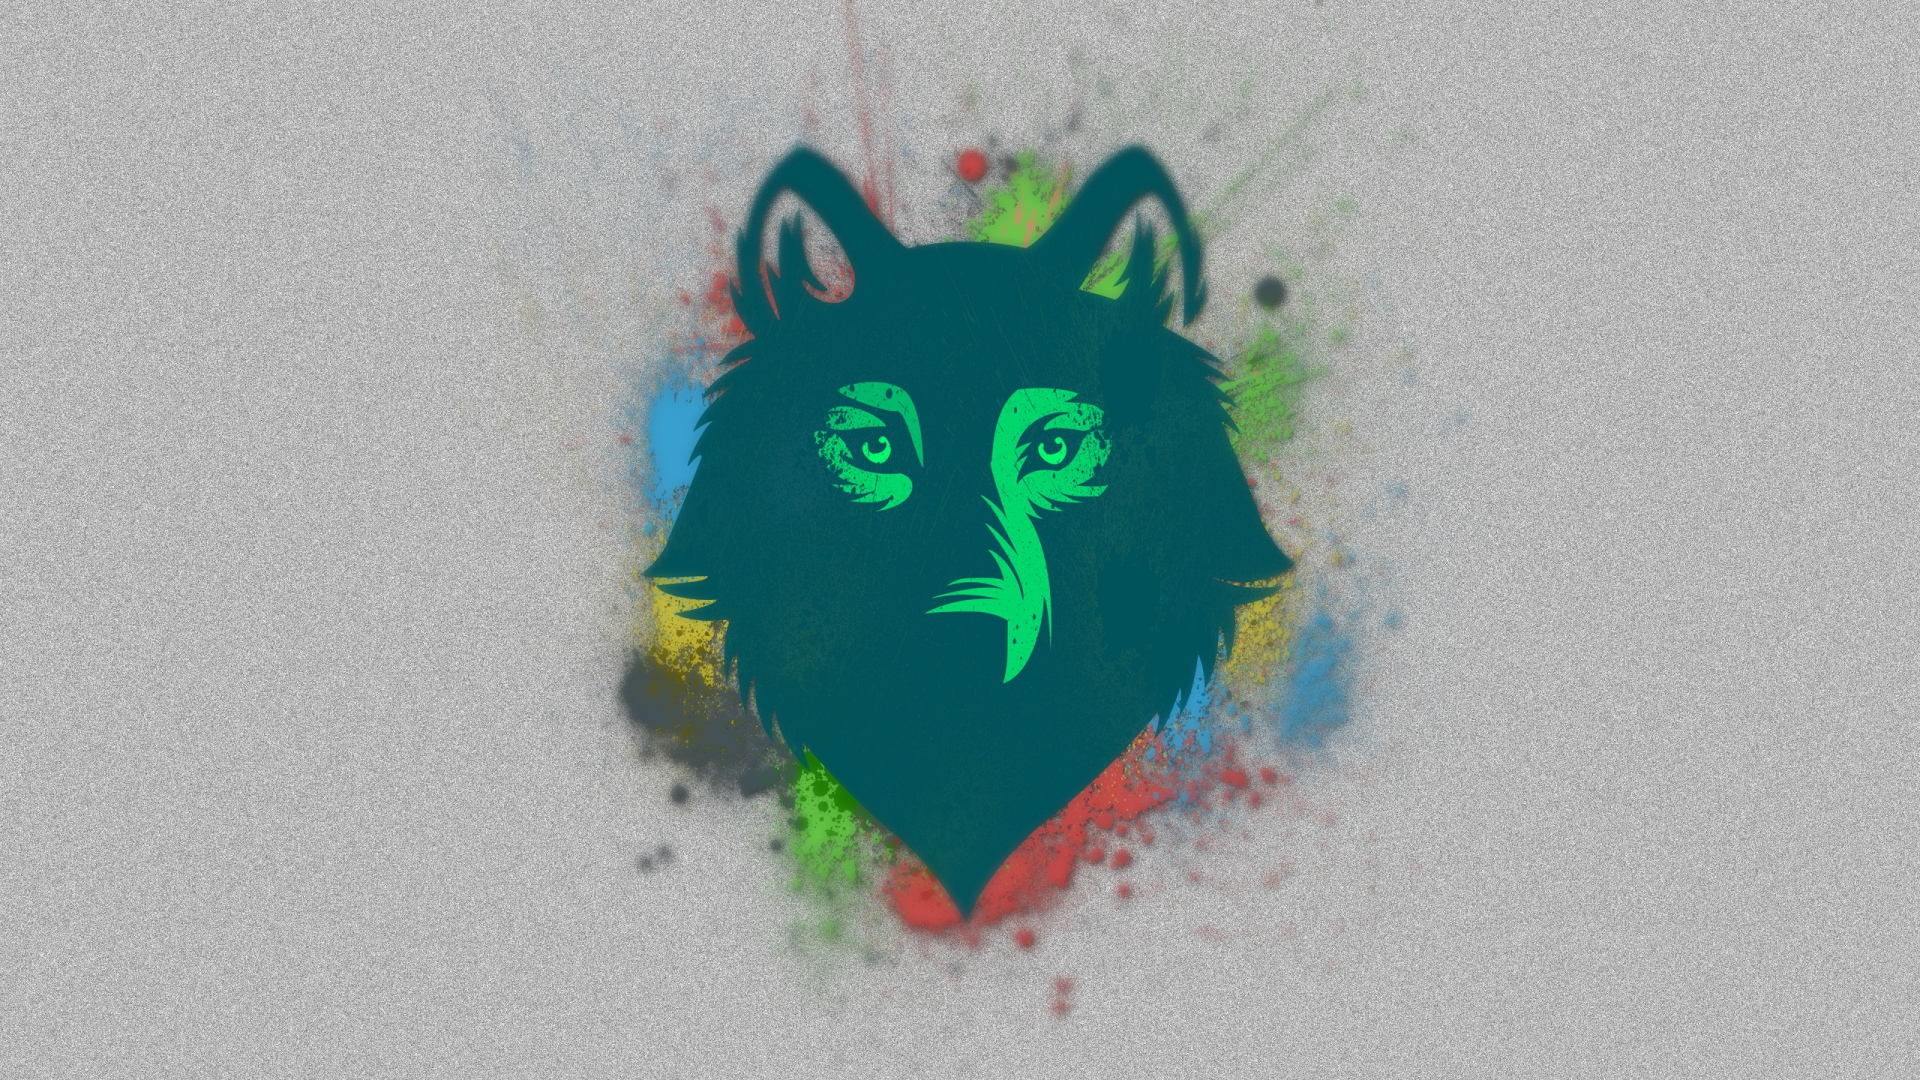 Drawn wallpaper wolf Spot Face 1920x1080 Download spot